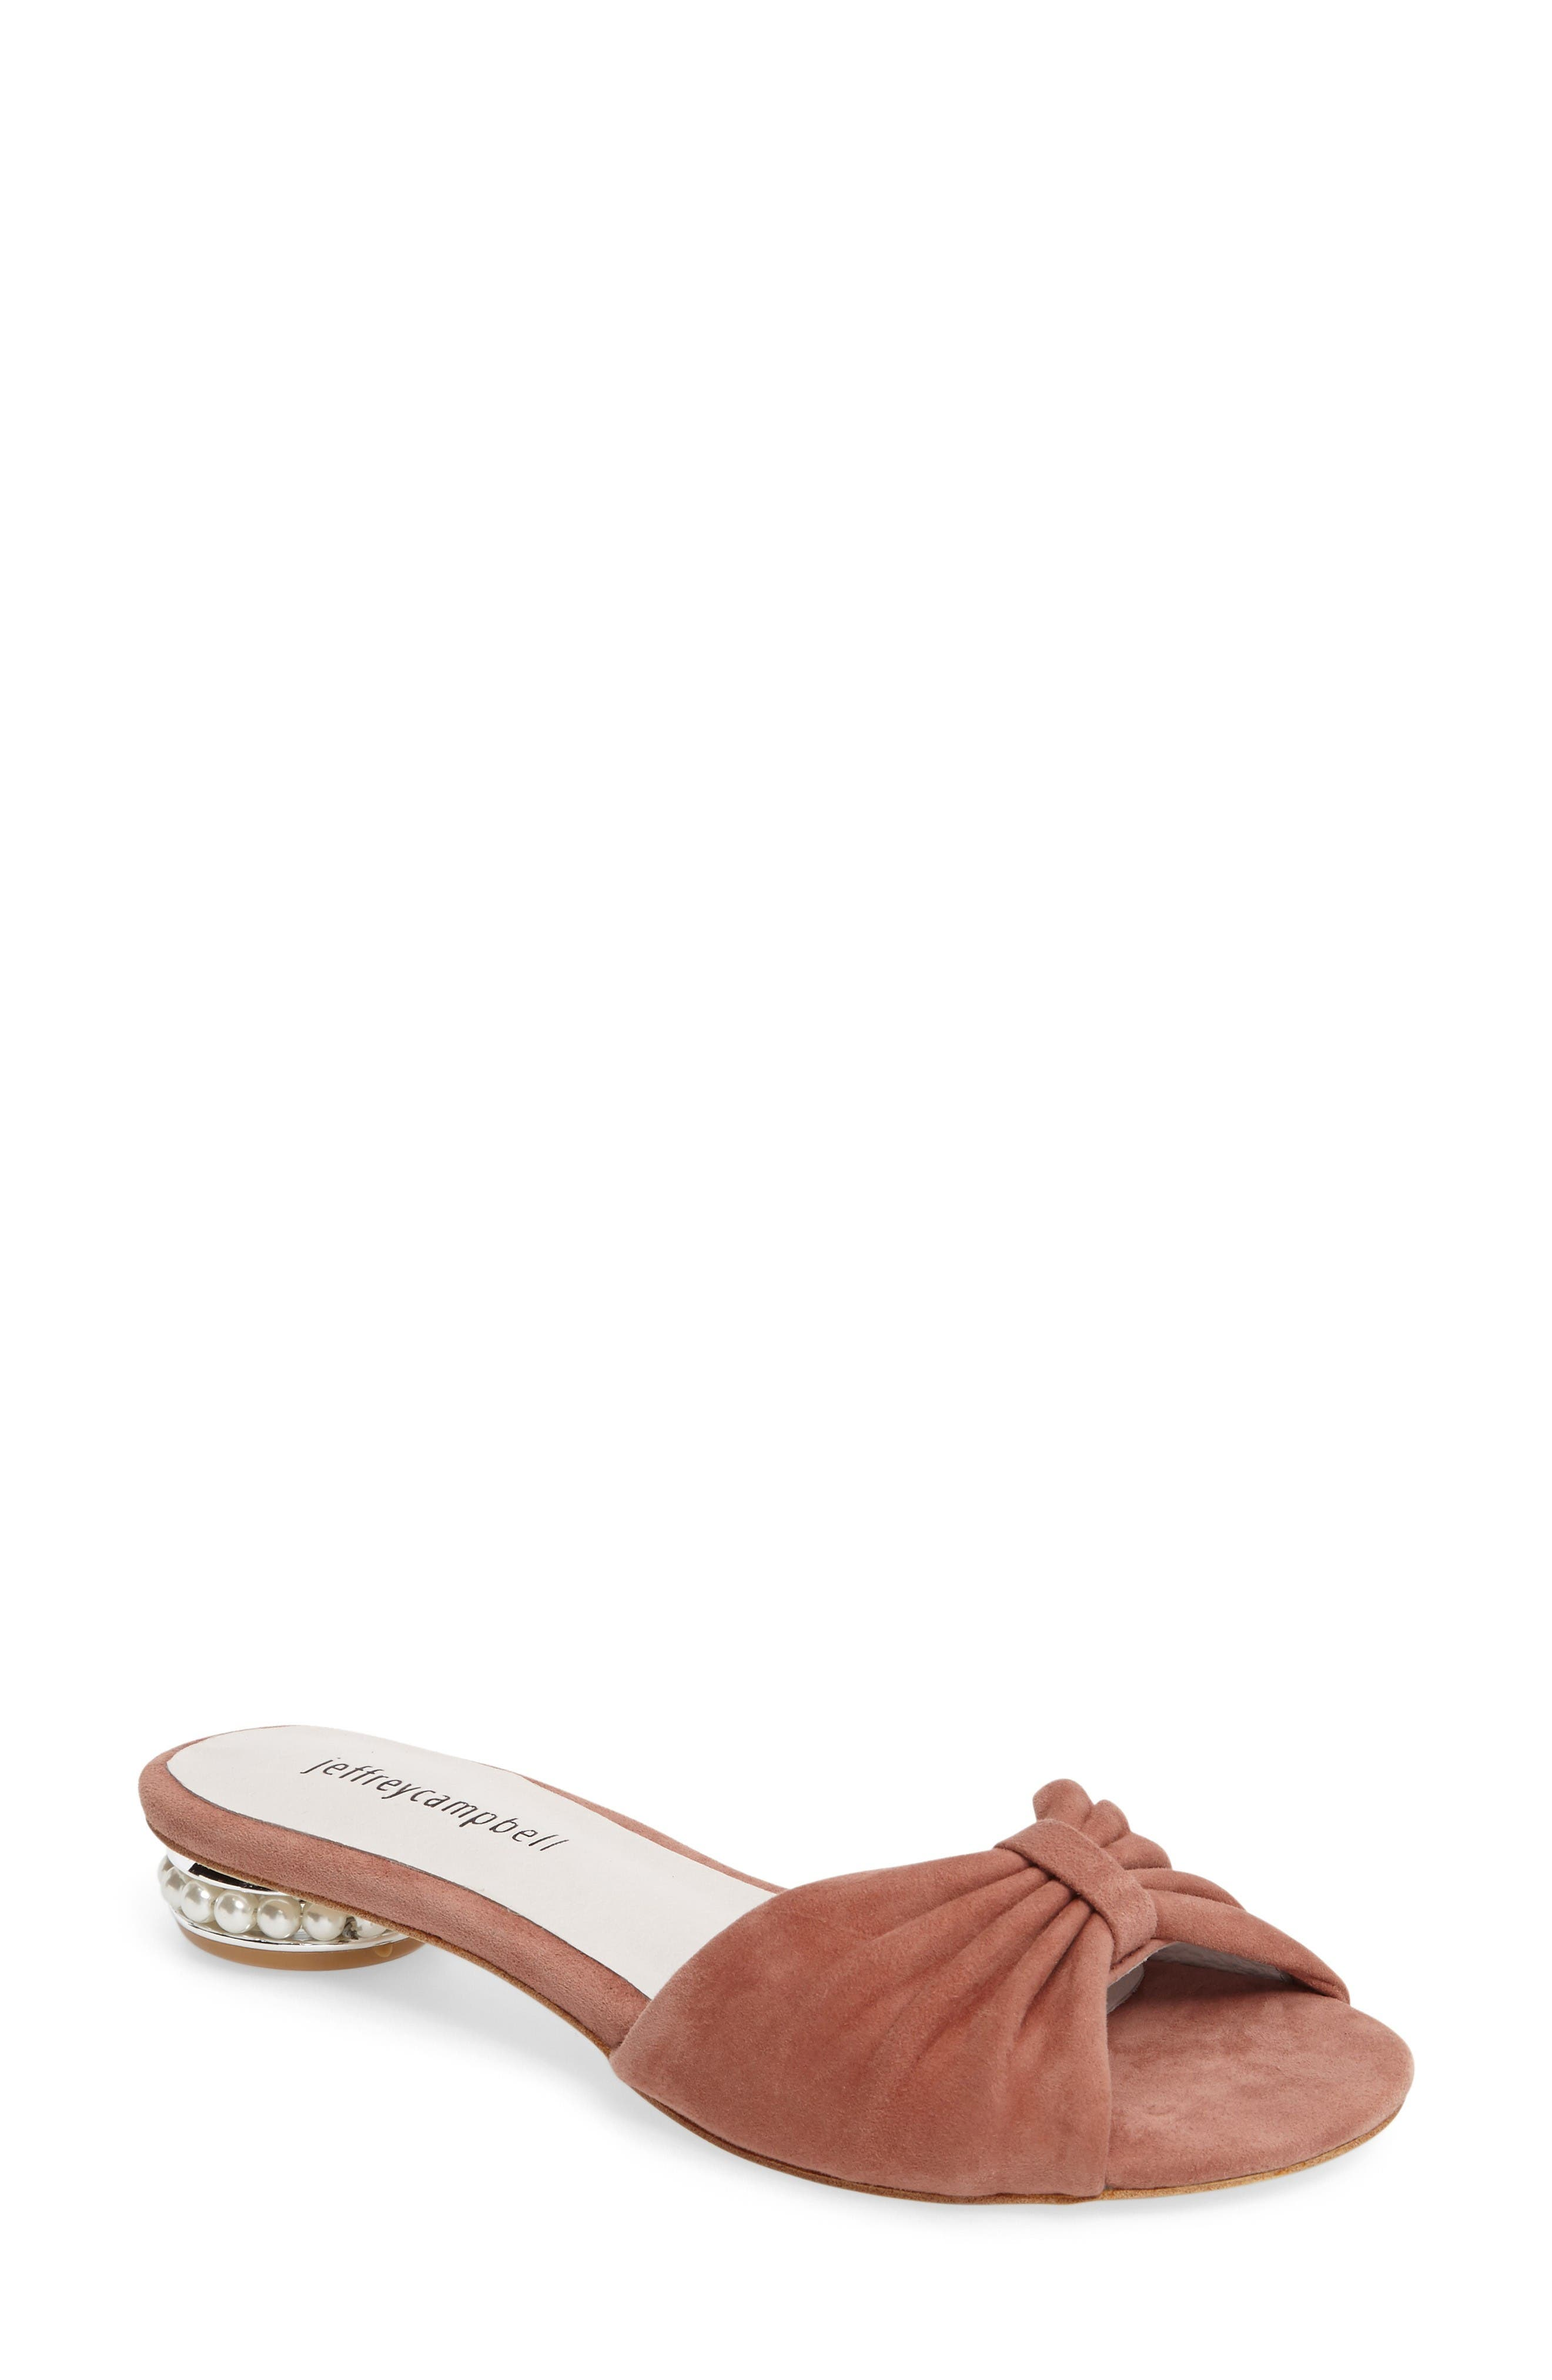 Alternate Image 1 Selected - Jeffrey Campbell Turbina Embellished Slide Sandal (Women)